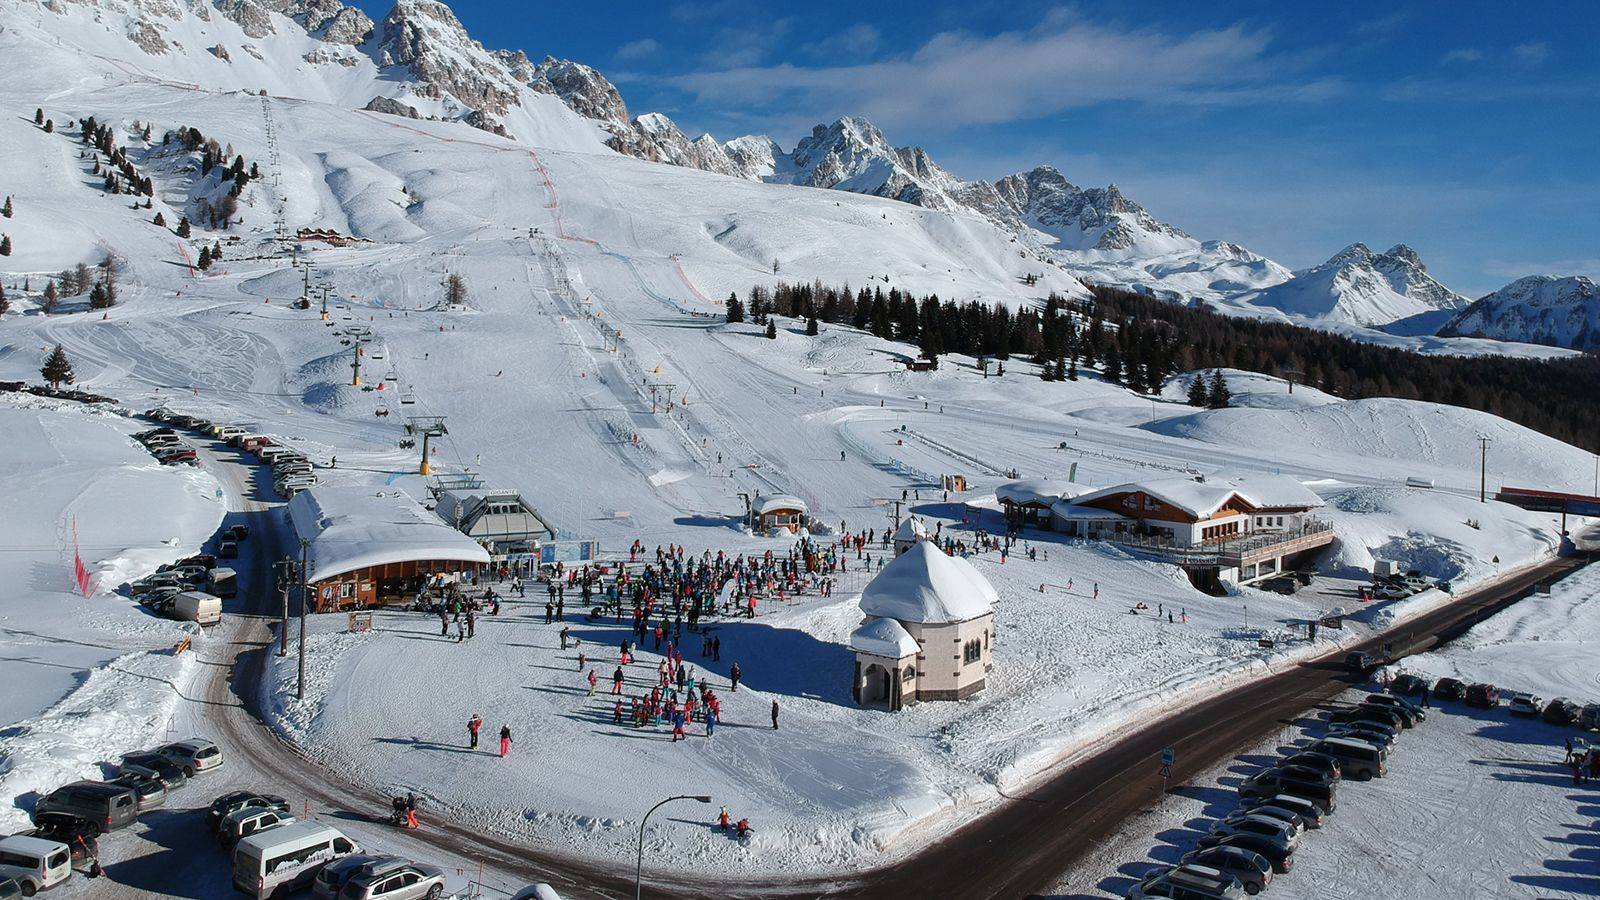 Aerial view of the ski resort of Passo San Pellegrino